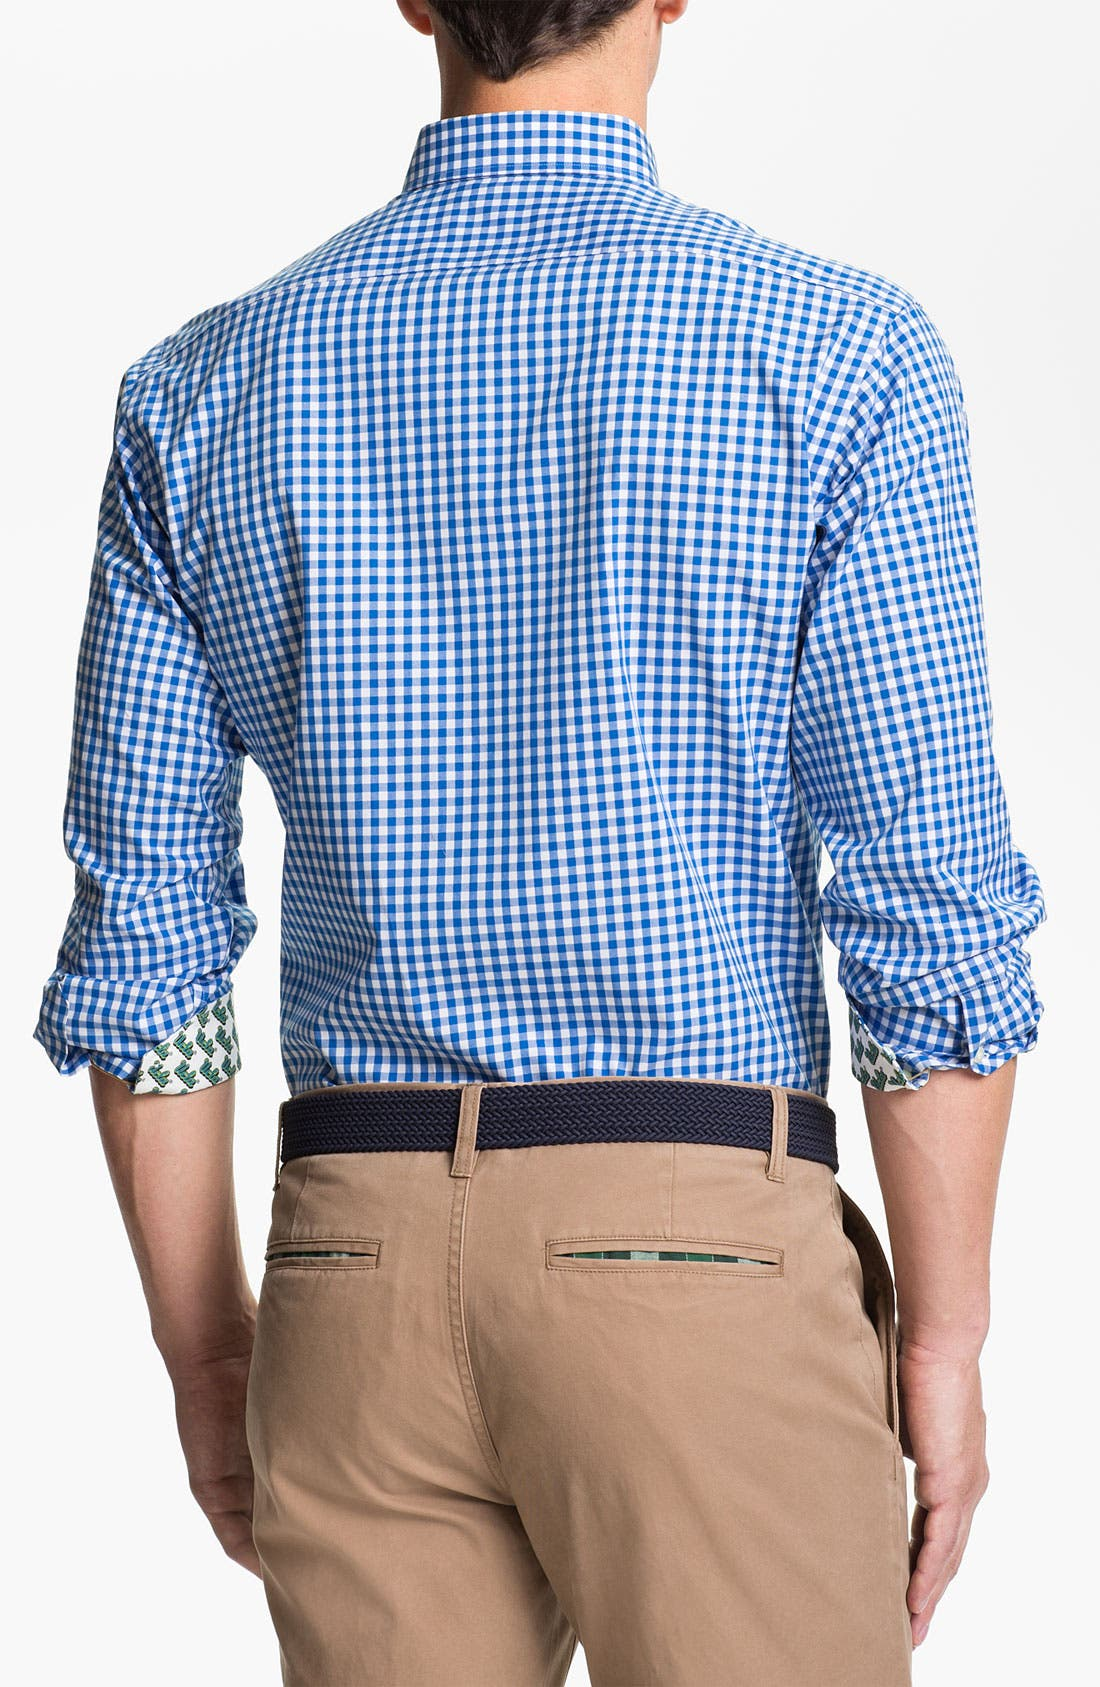 Alternate Image 2  - Thomas Dean 'UCLA' Gingham Sport Shirt